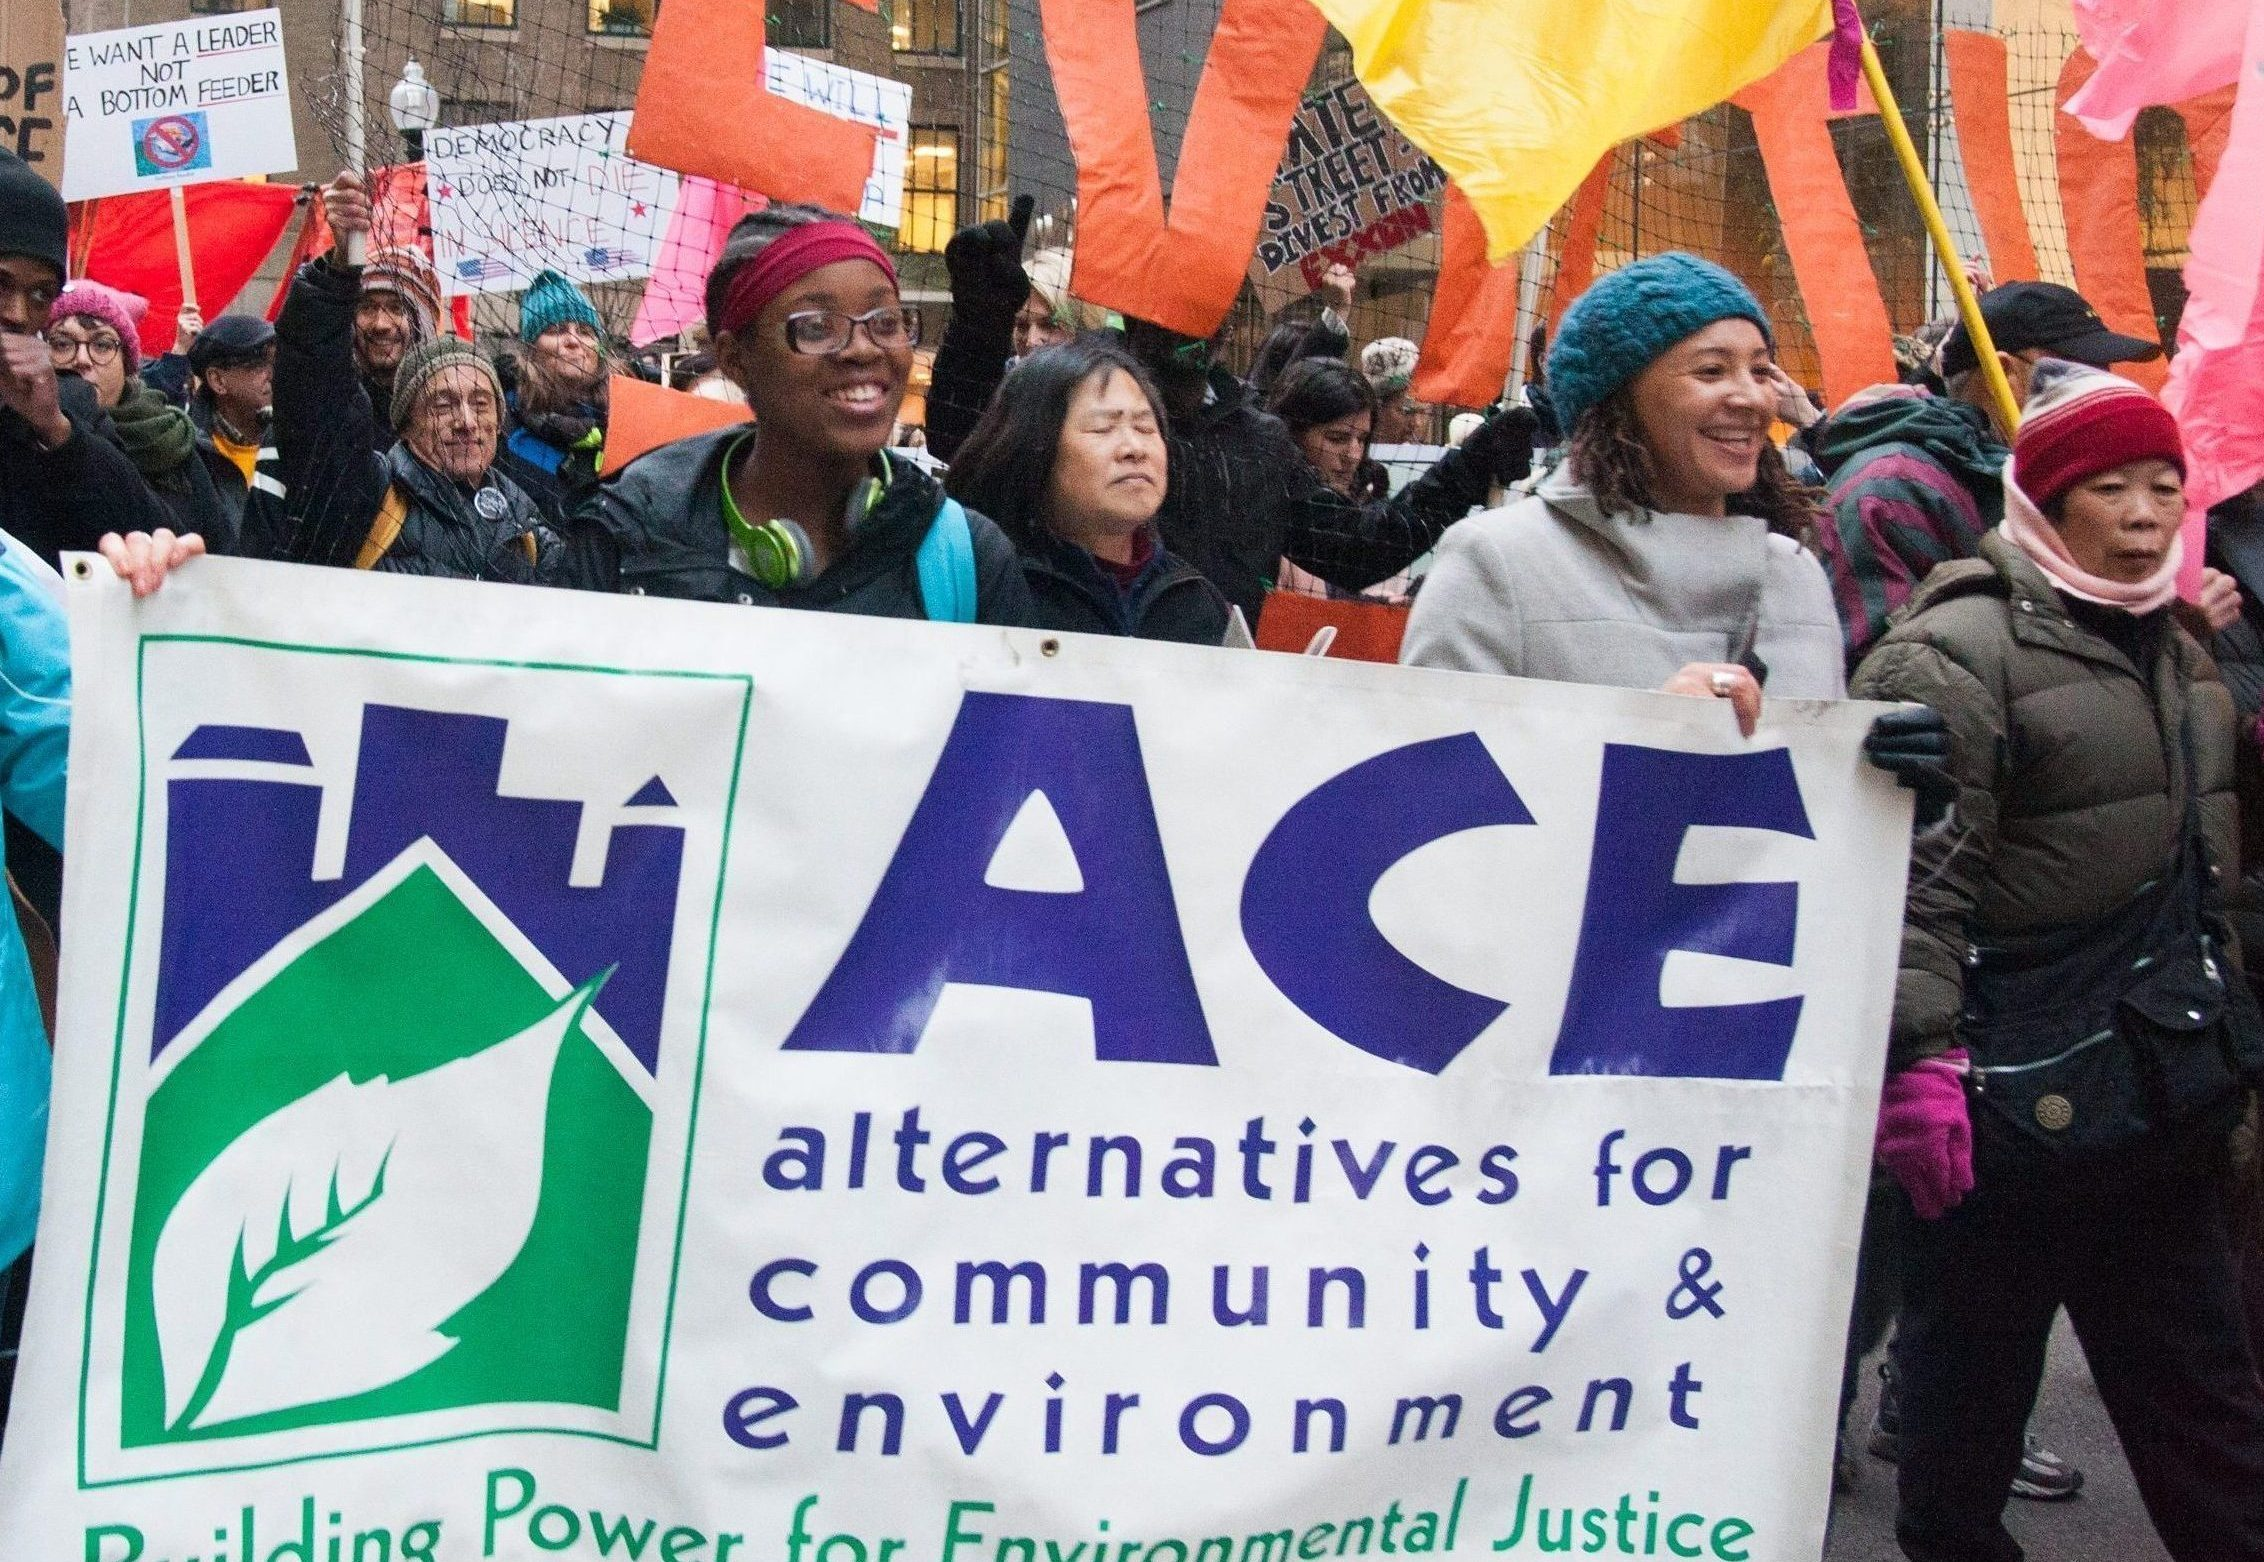 GREEN JUSTICE COALITION